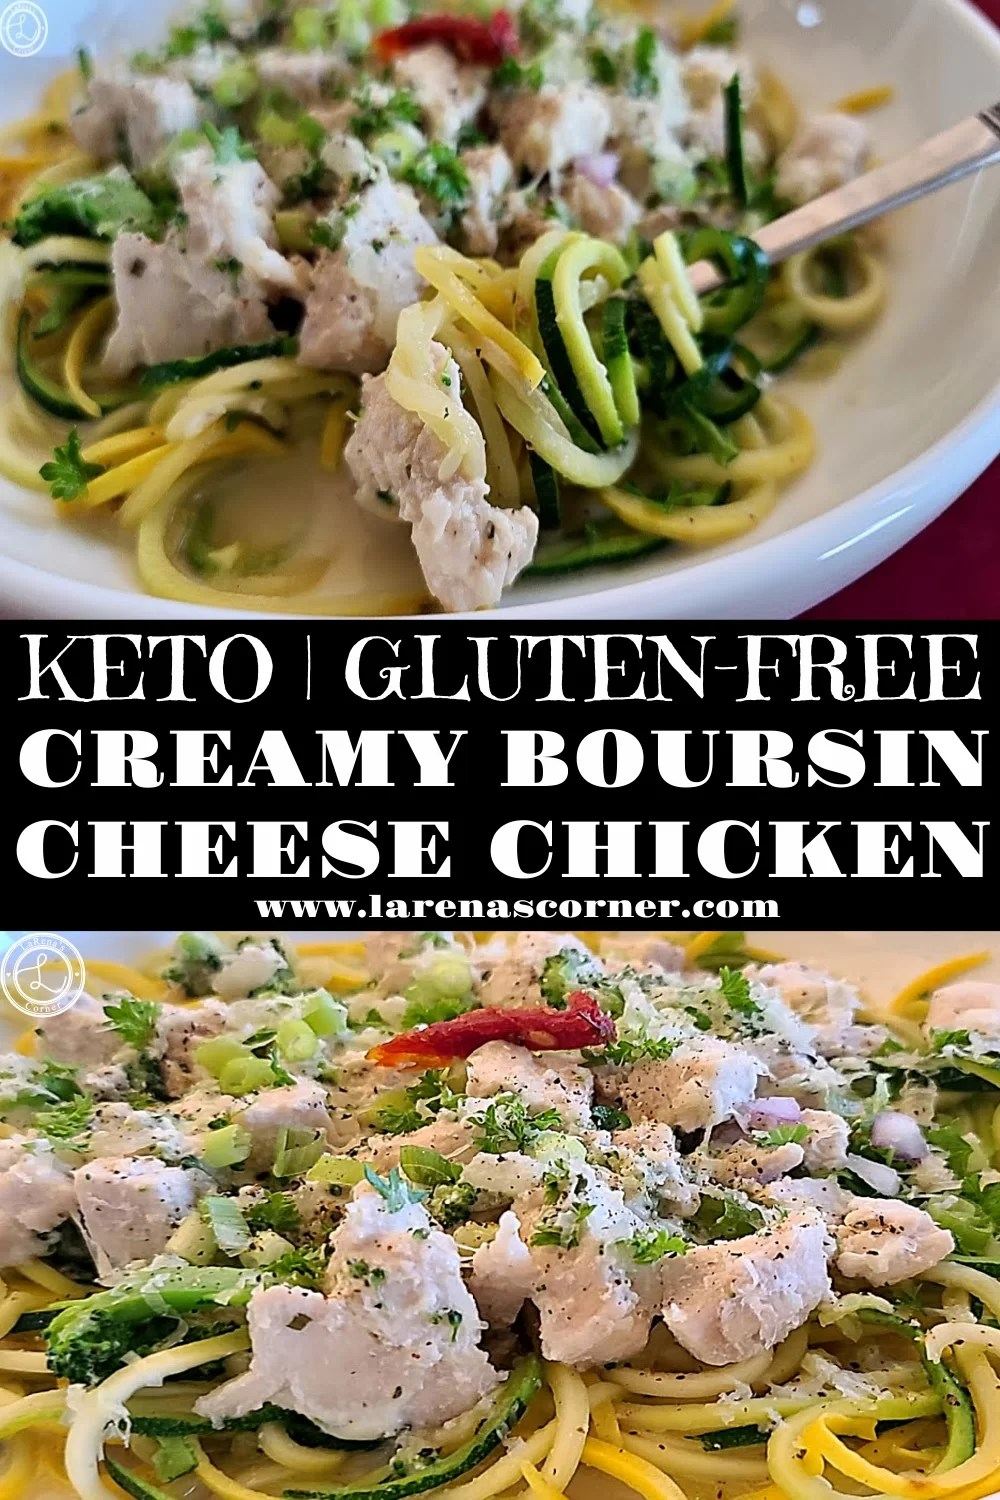 Creamy Boursin Cheese Chicken. Two Pictures. One picture of a bite on a fork. One picture of a close up inside the bowl.